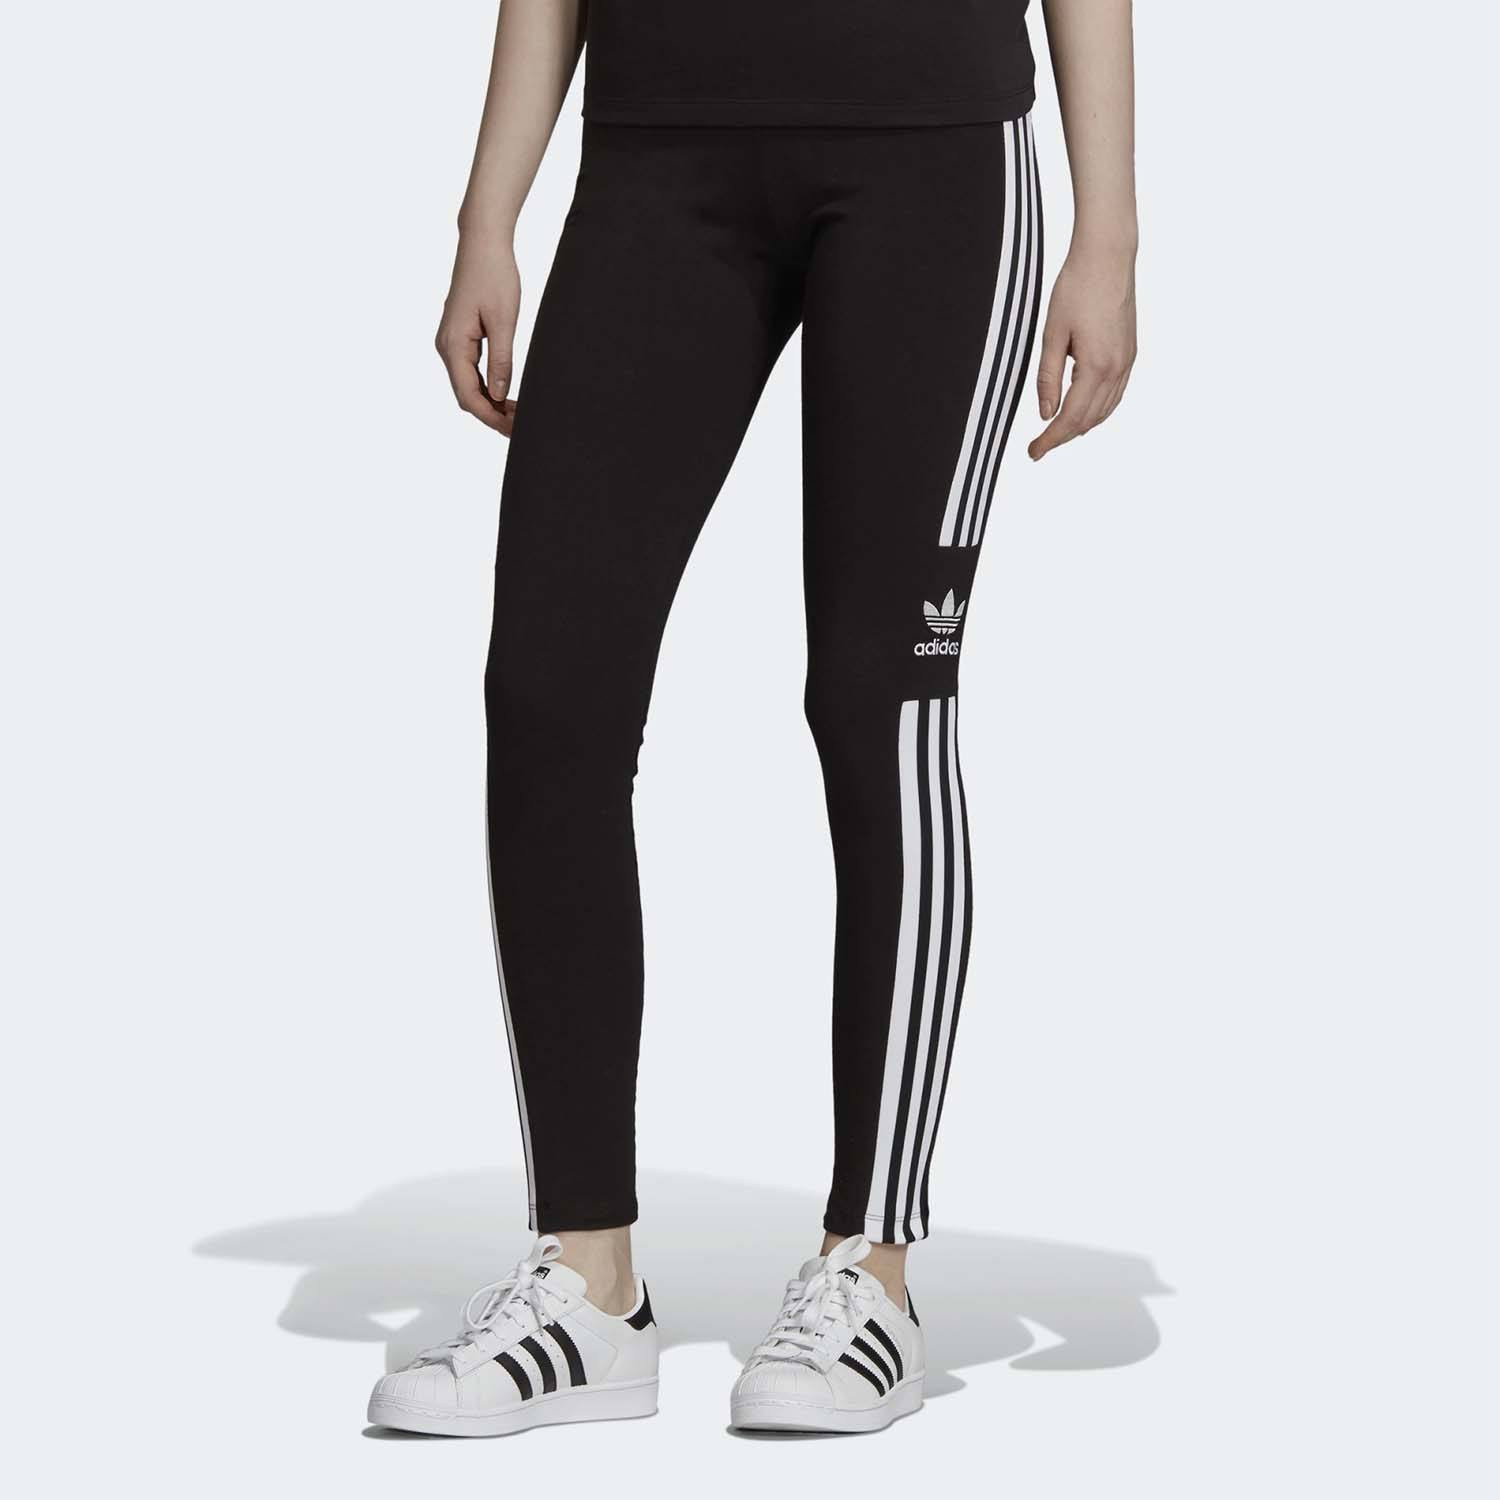 adidas Originals Trefoil Women's Tights (9000022657_1469)